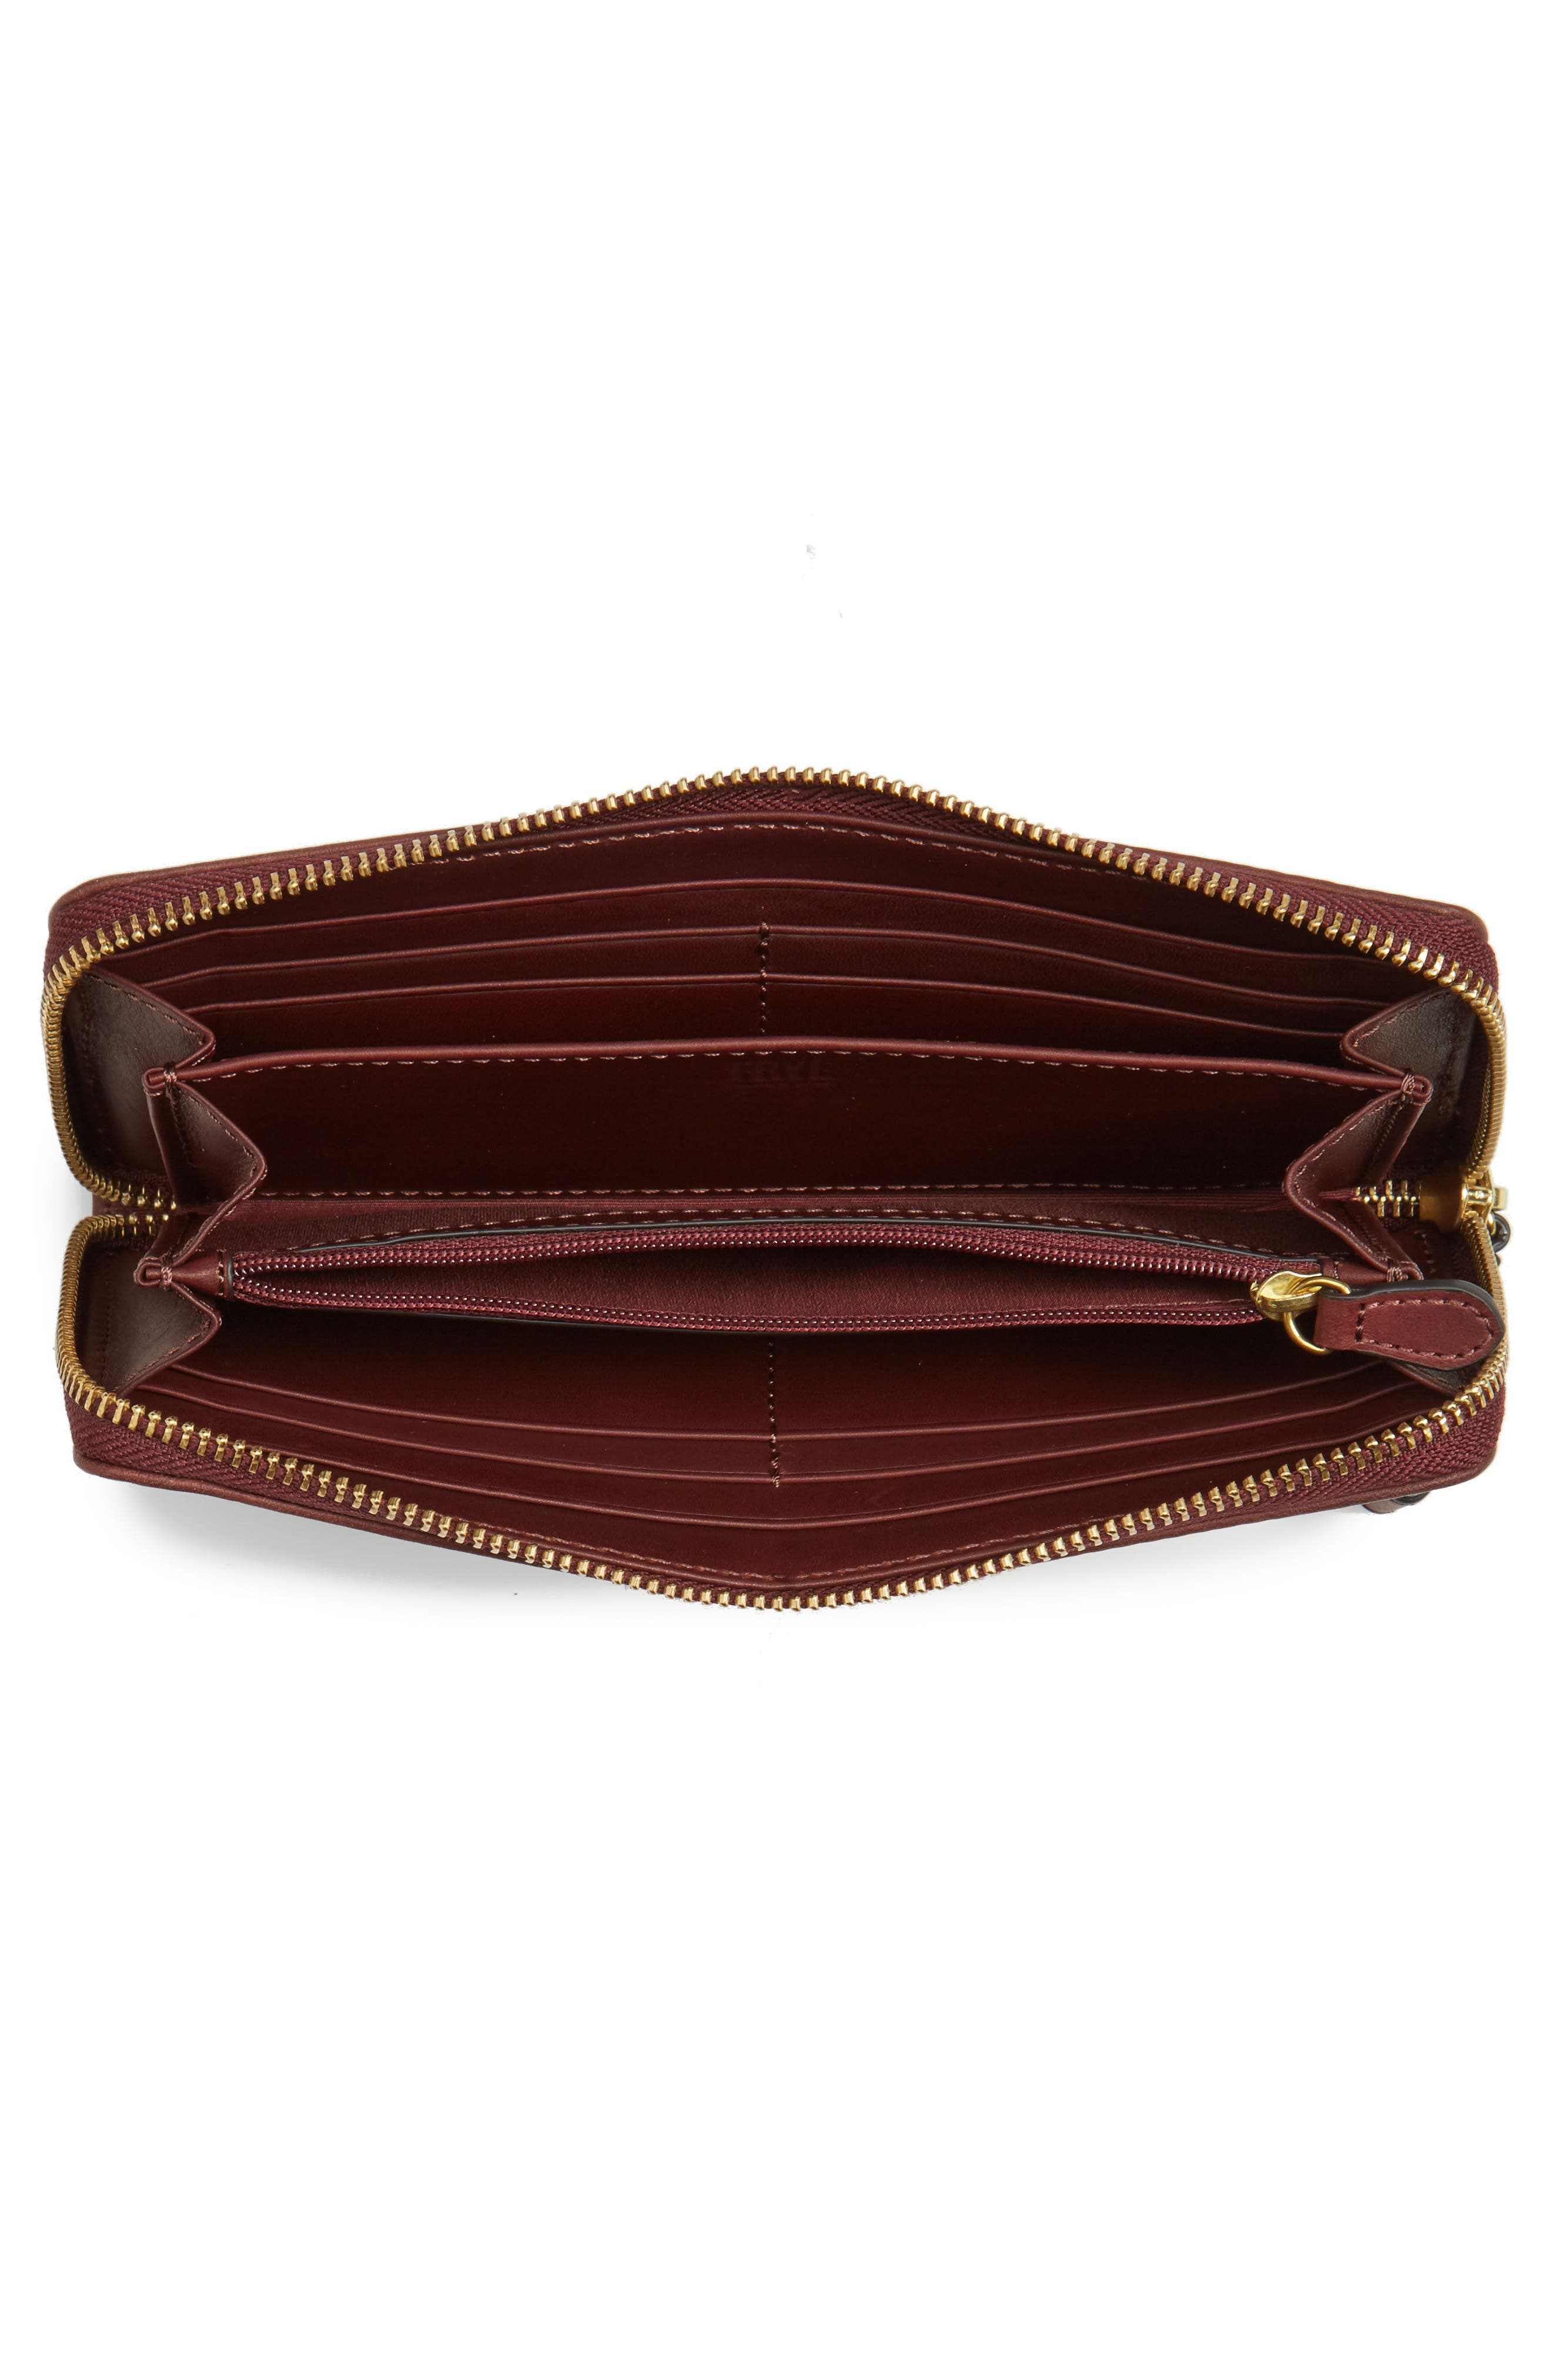 Campus Rivet Leather Continental Zip Wallet,                             Alternate thumbnail 2, color,                             Black Cherry